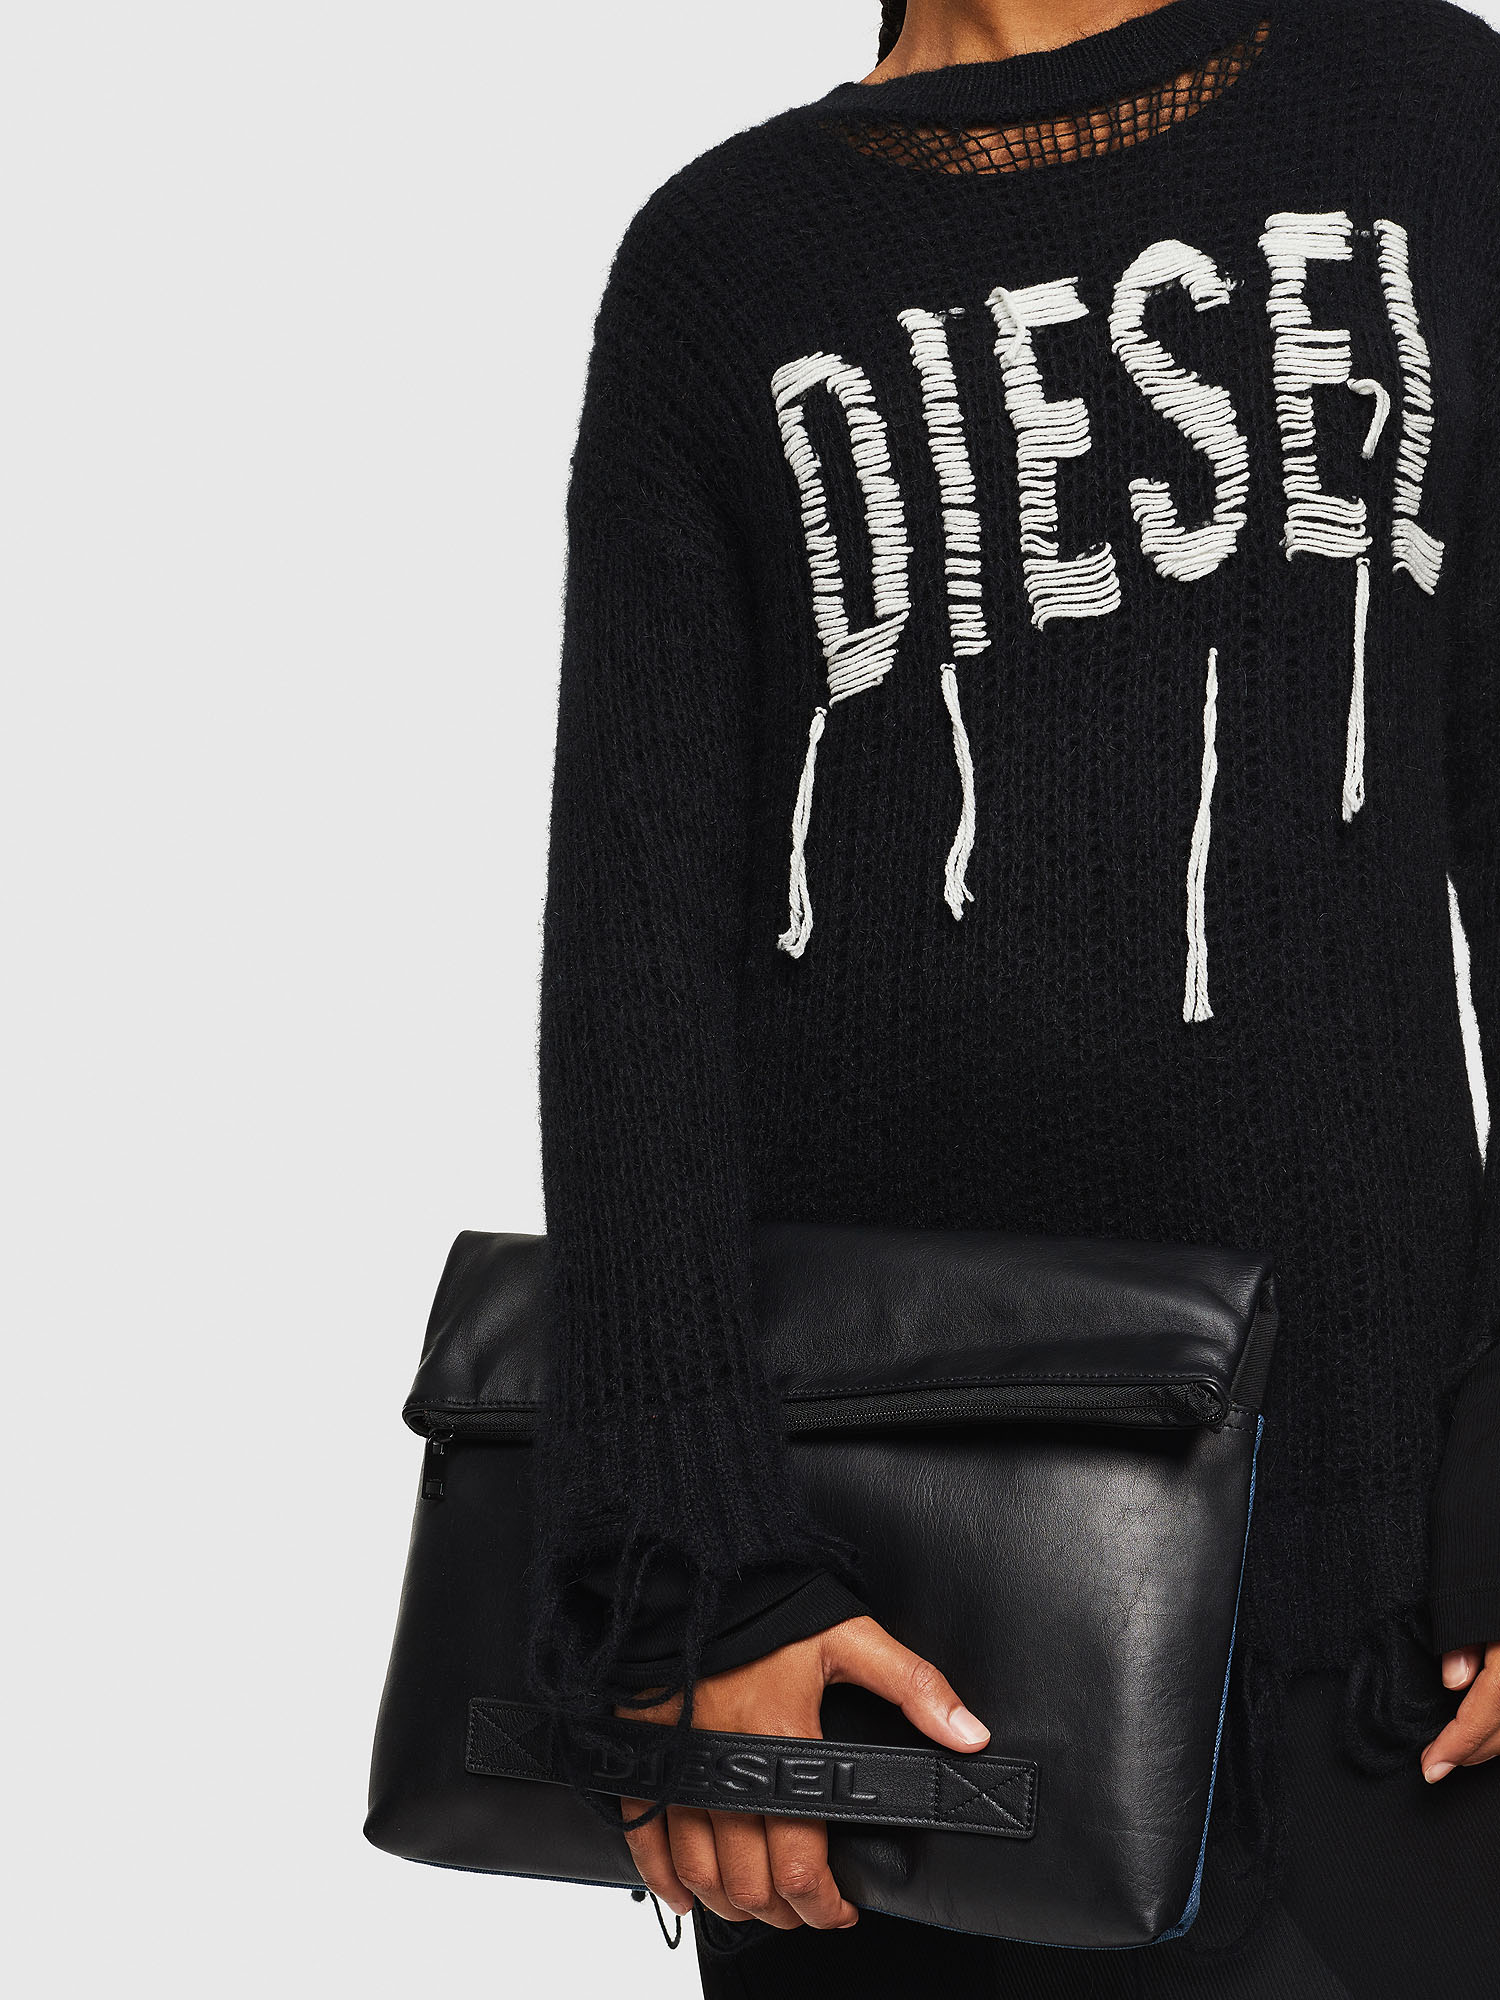 Diesel - NOALE,  - Clutches - Image 6